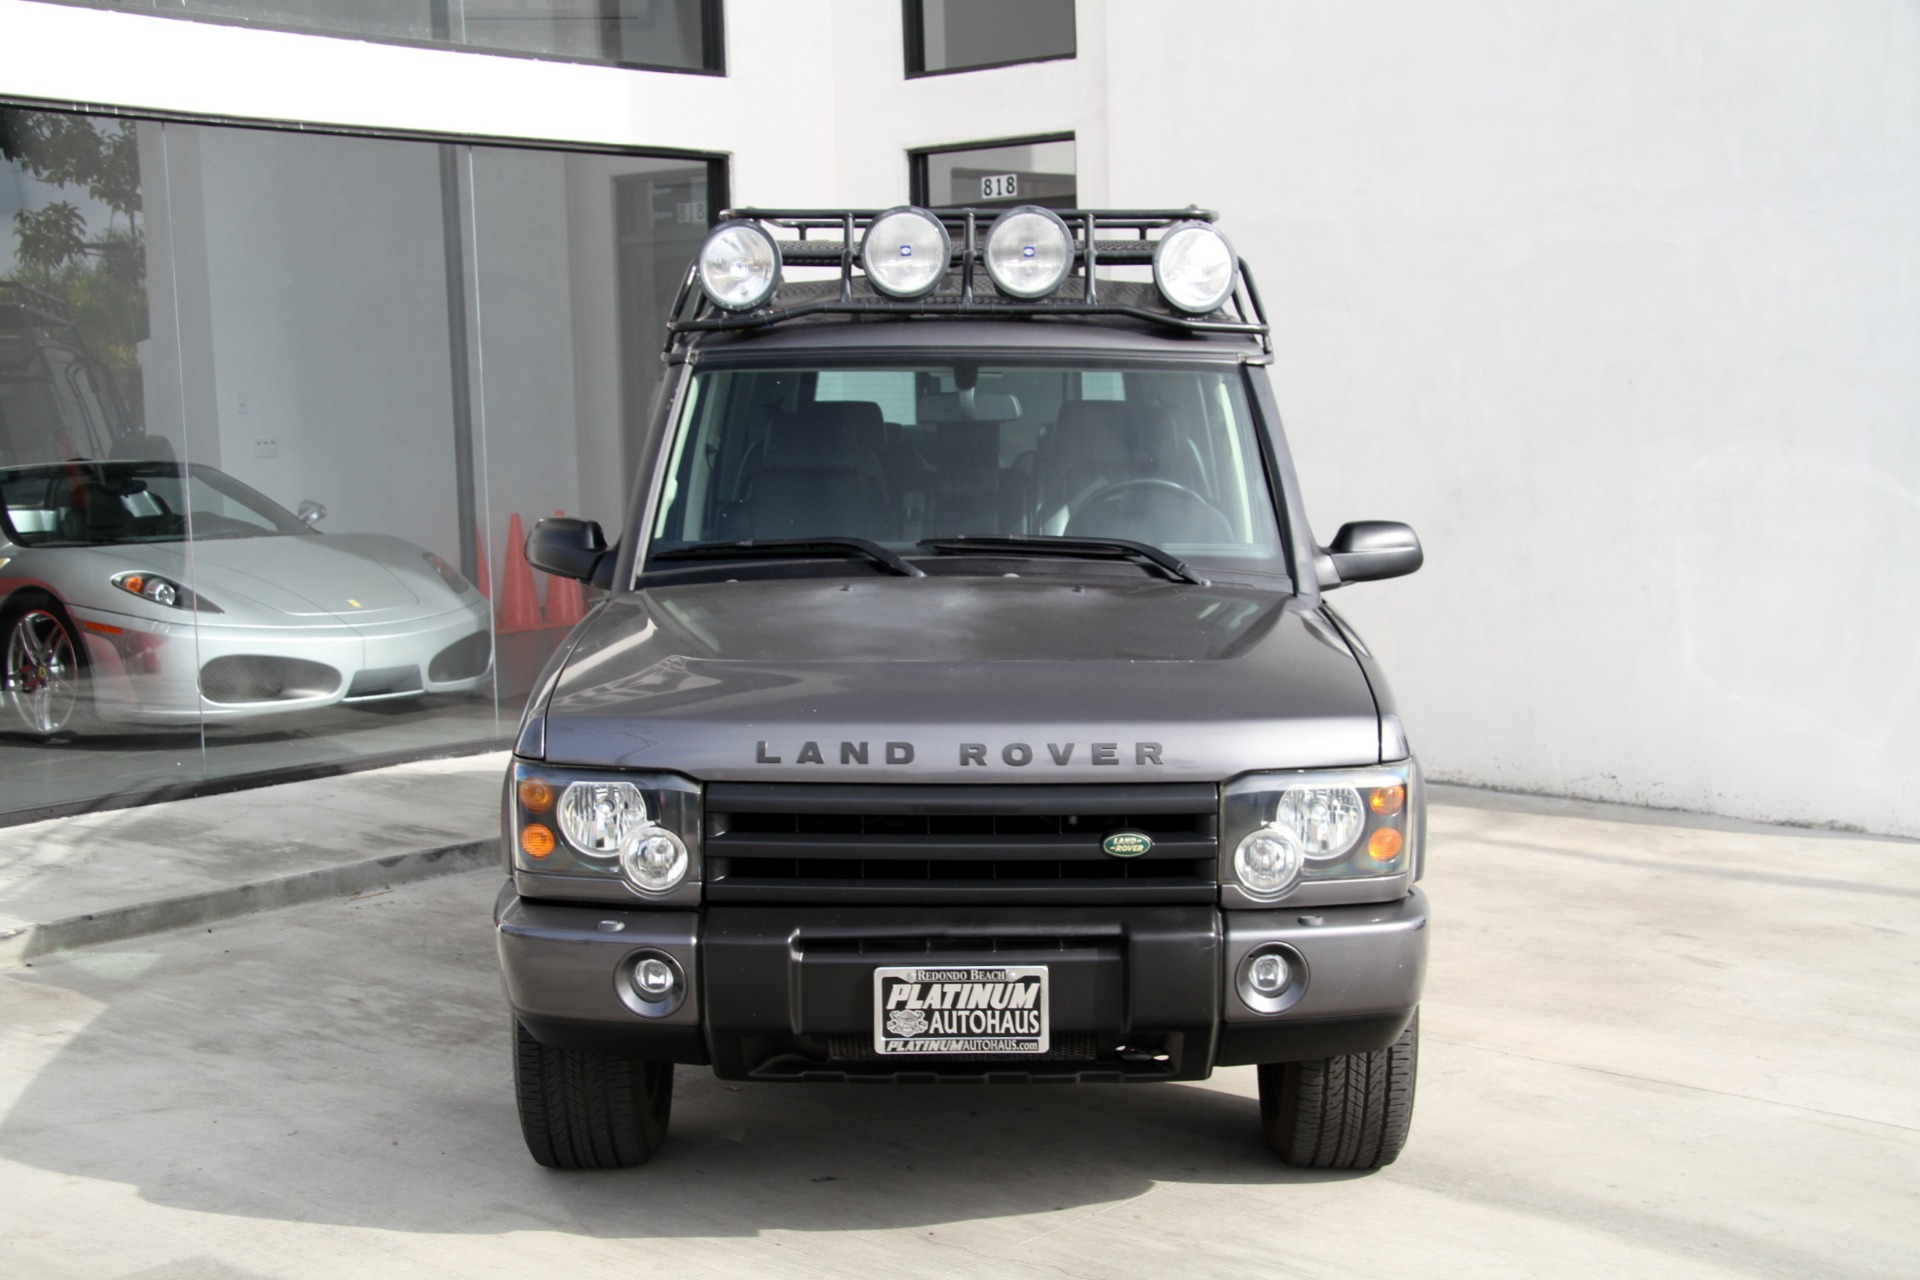 Land Rover For Sale Near Me >> 2004 Land Rover Discovery II SE7 Stock # 856998 for sale ...